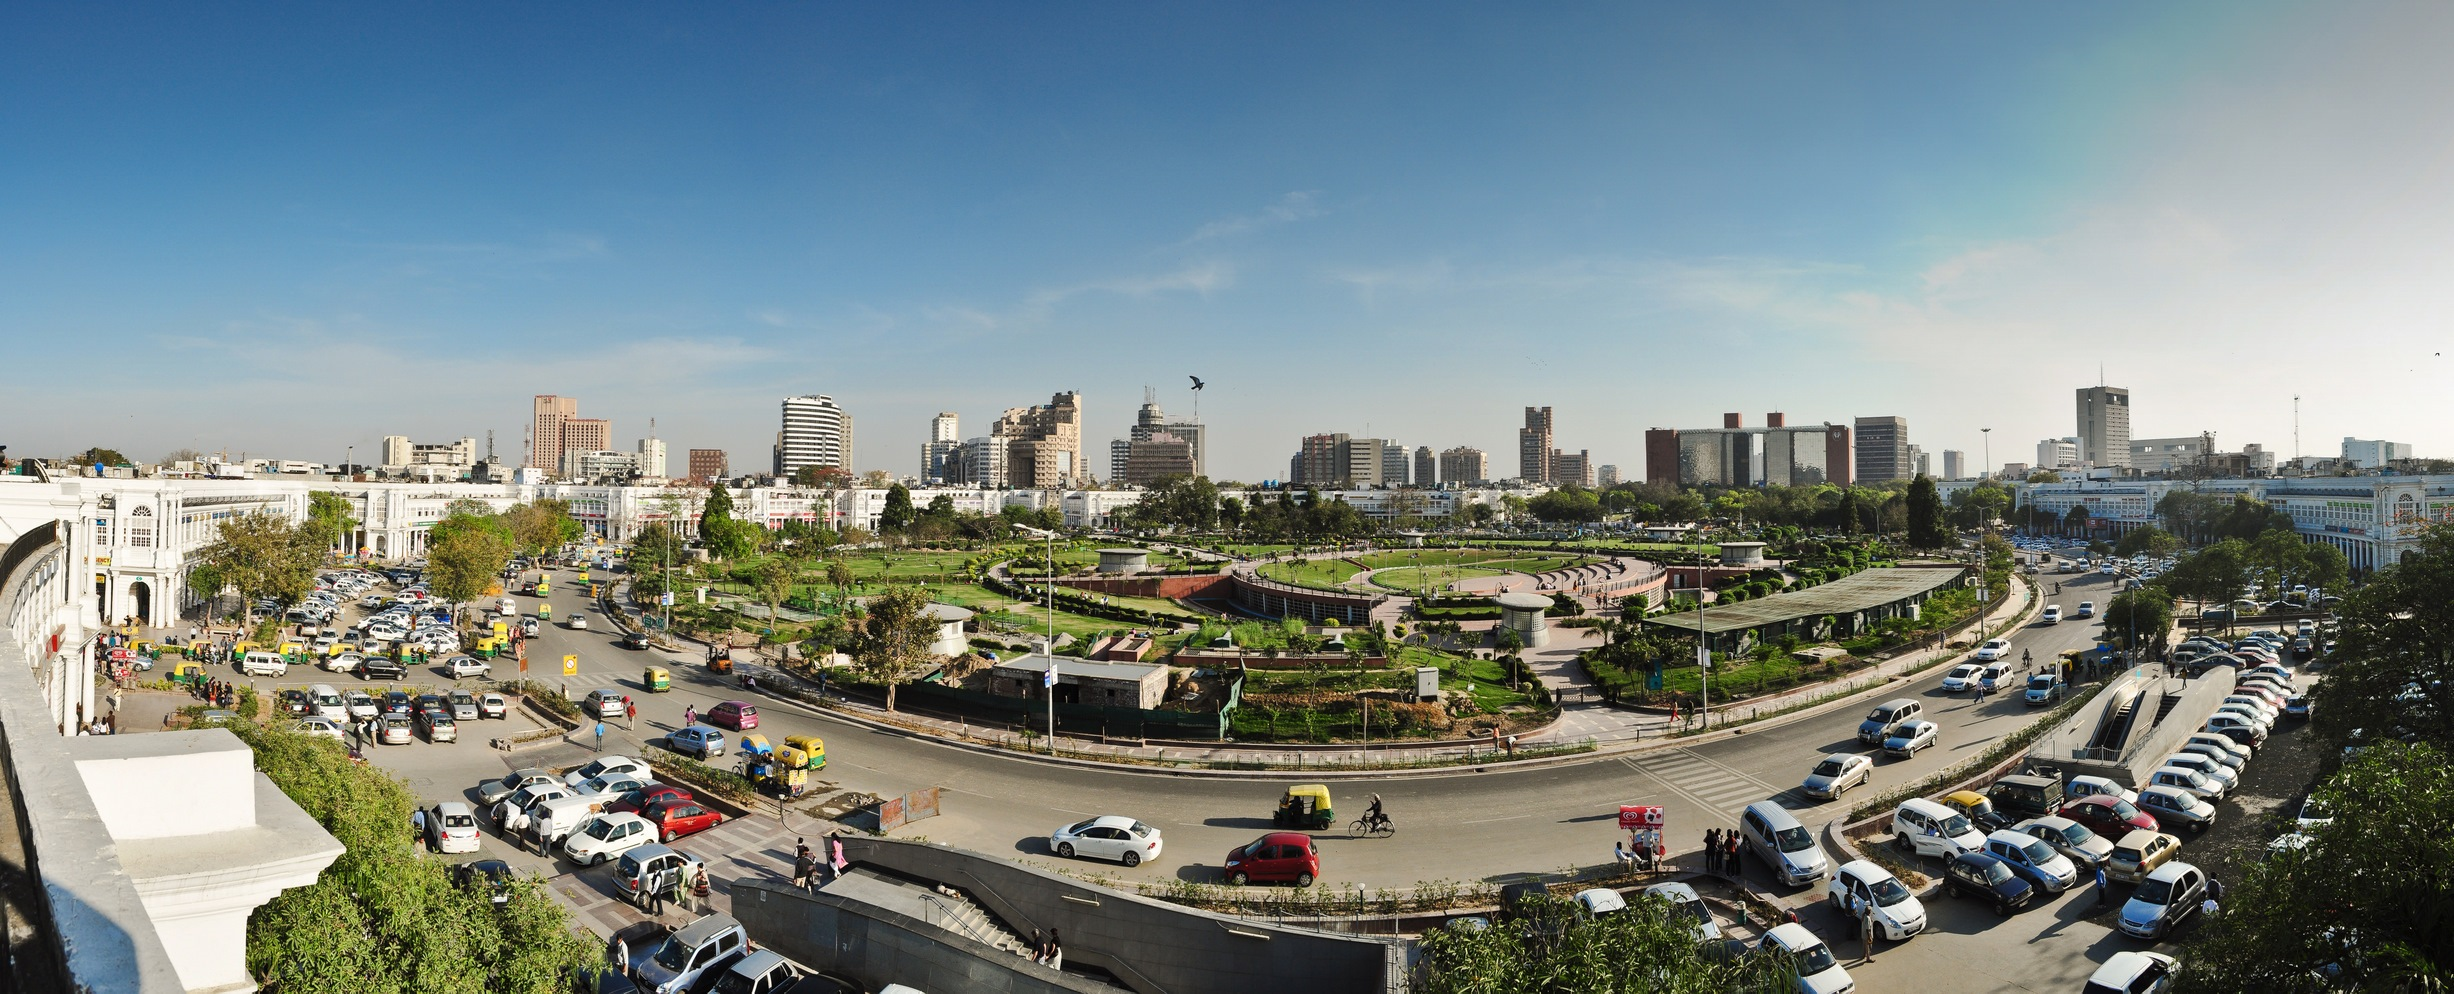 Connaught Place in Delhi is an important economic hub in the National Capital Region